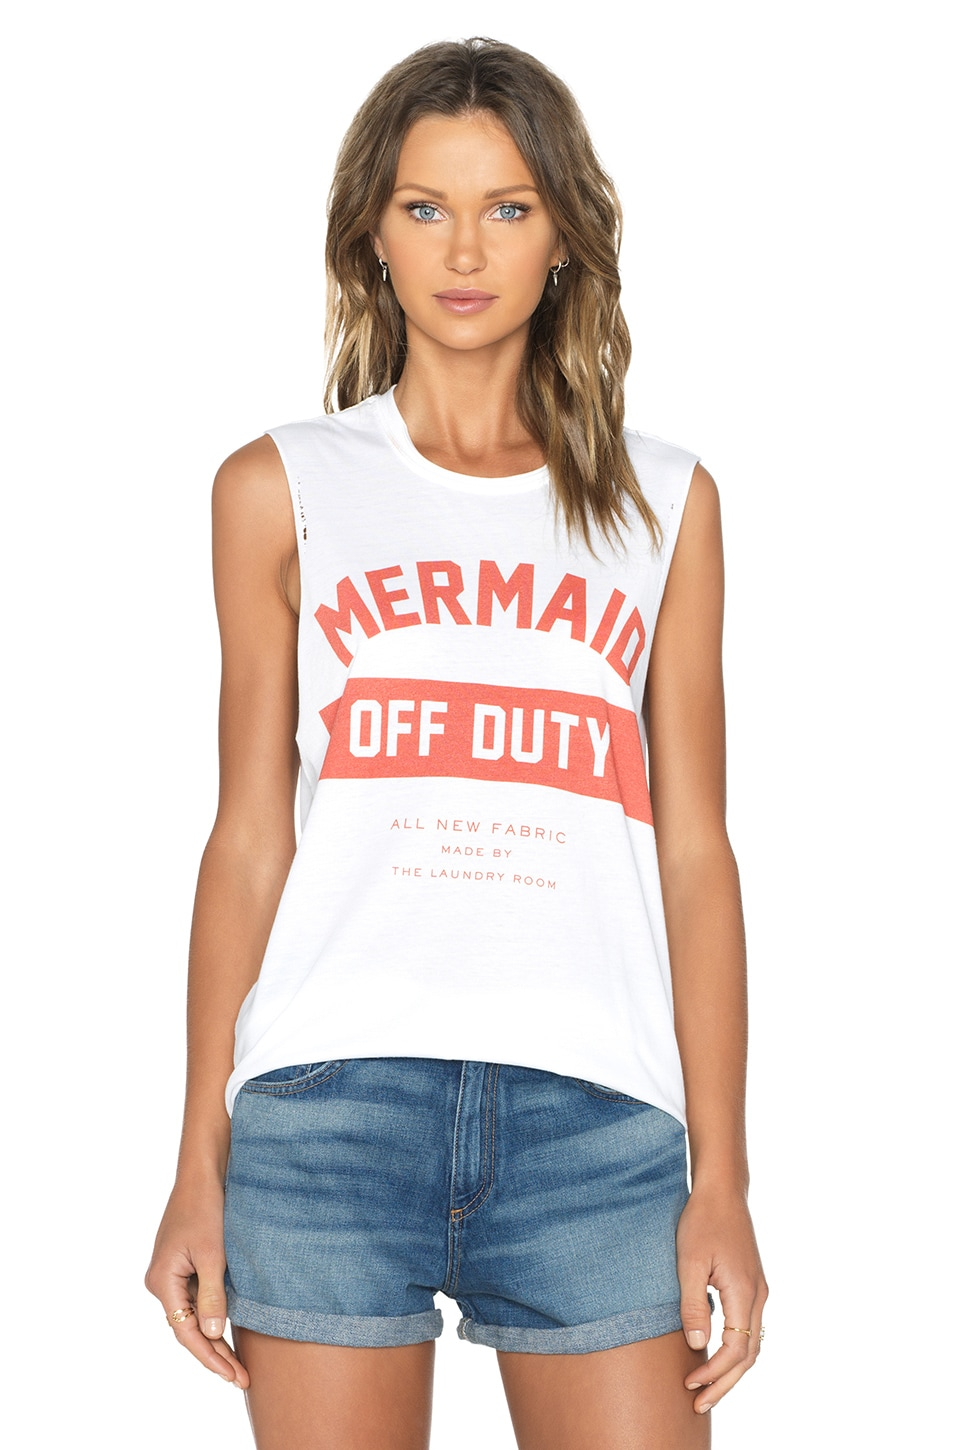 The Laundry Room Mermaid Off Duty Uniform Muscle Tank in White